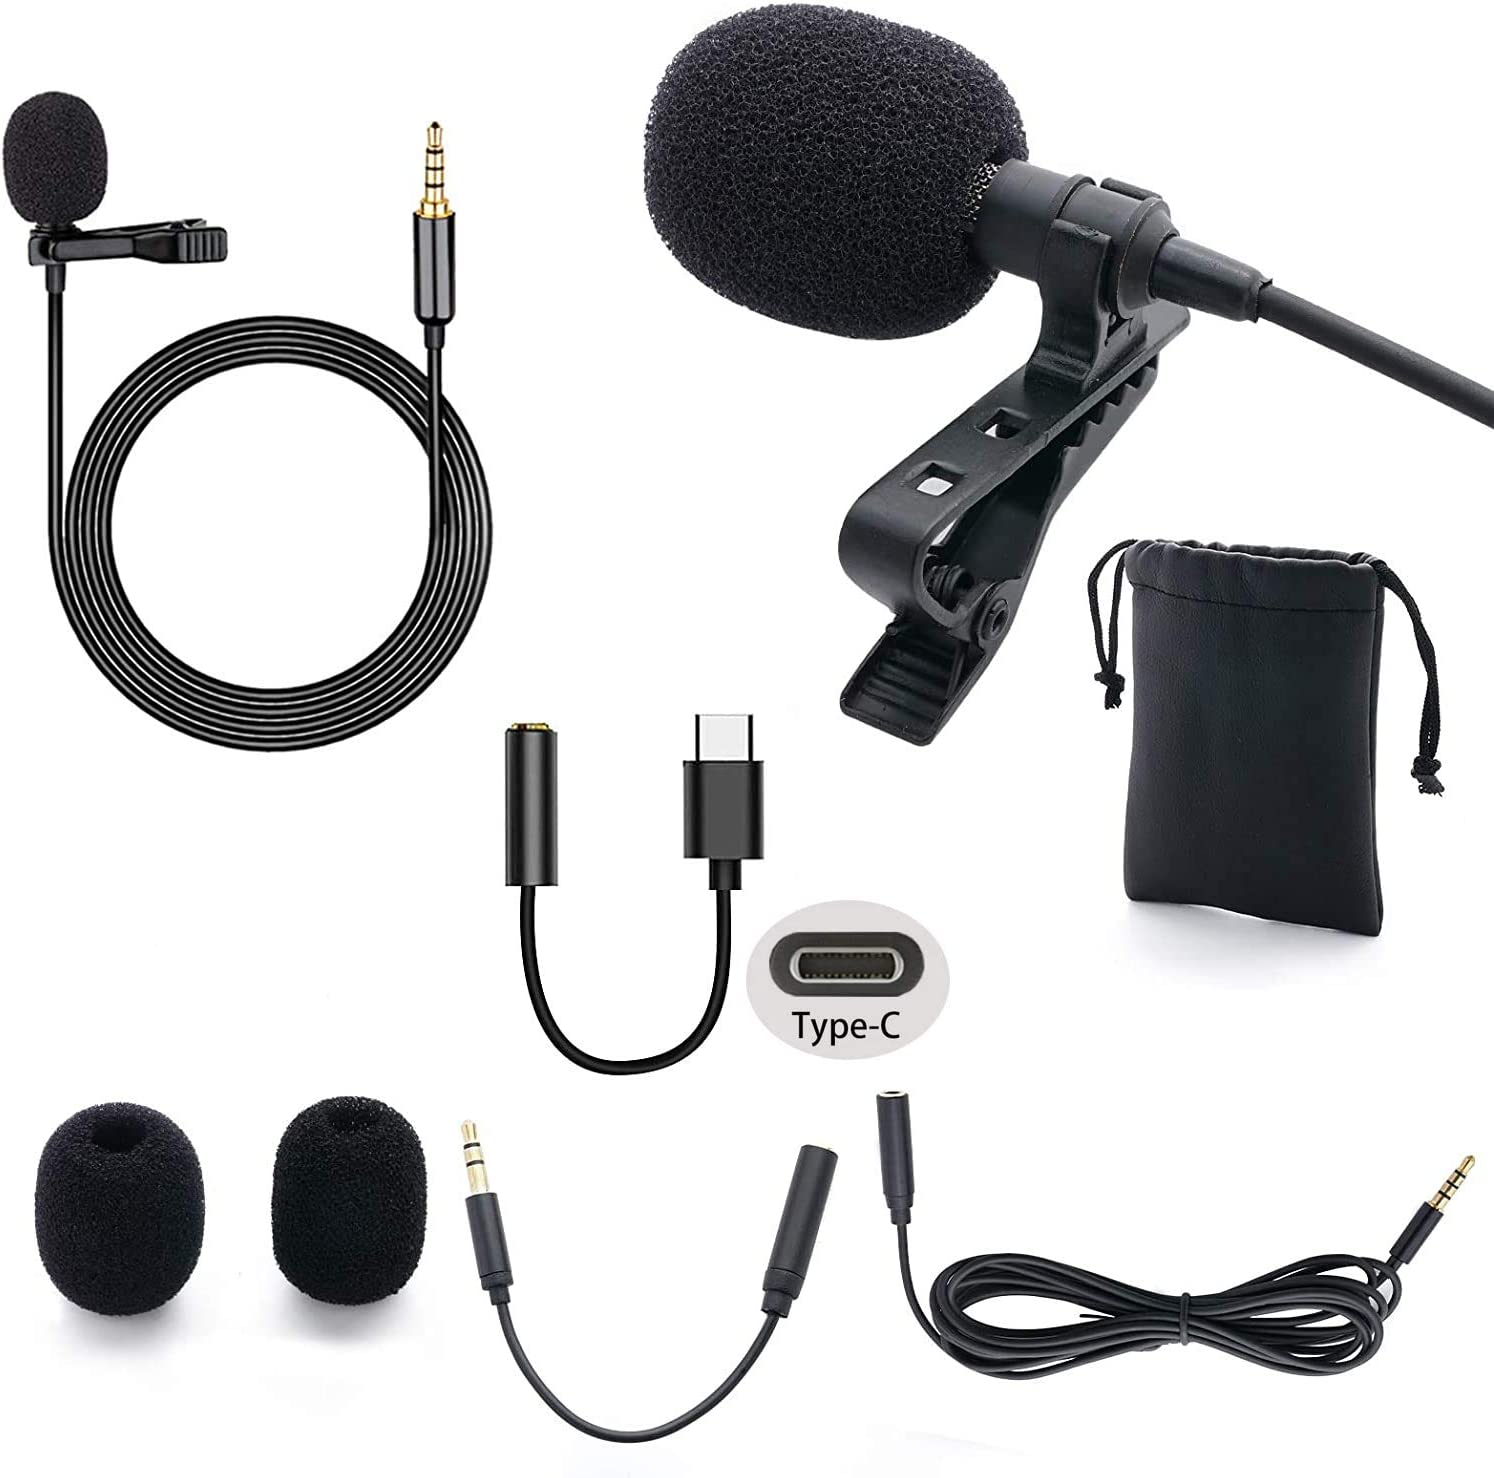 Amazon Com 3 5mm Professional Lavalier Lapel Microphone Omnidirectional Mic For Desktop Pc Computer Mac Smartphone Iphone Camcorder Android Camera For Interview Youtube Video Conference Podcast 1 Pack Musical Instruments